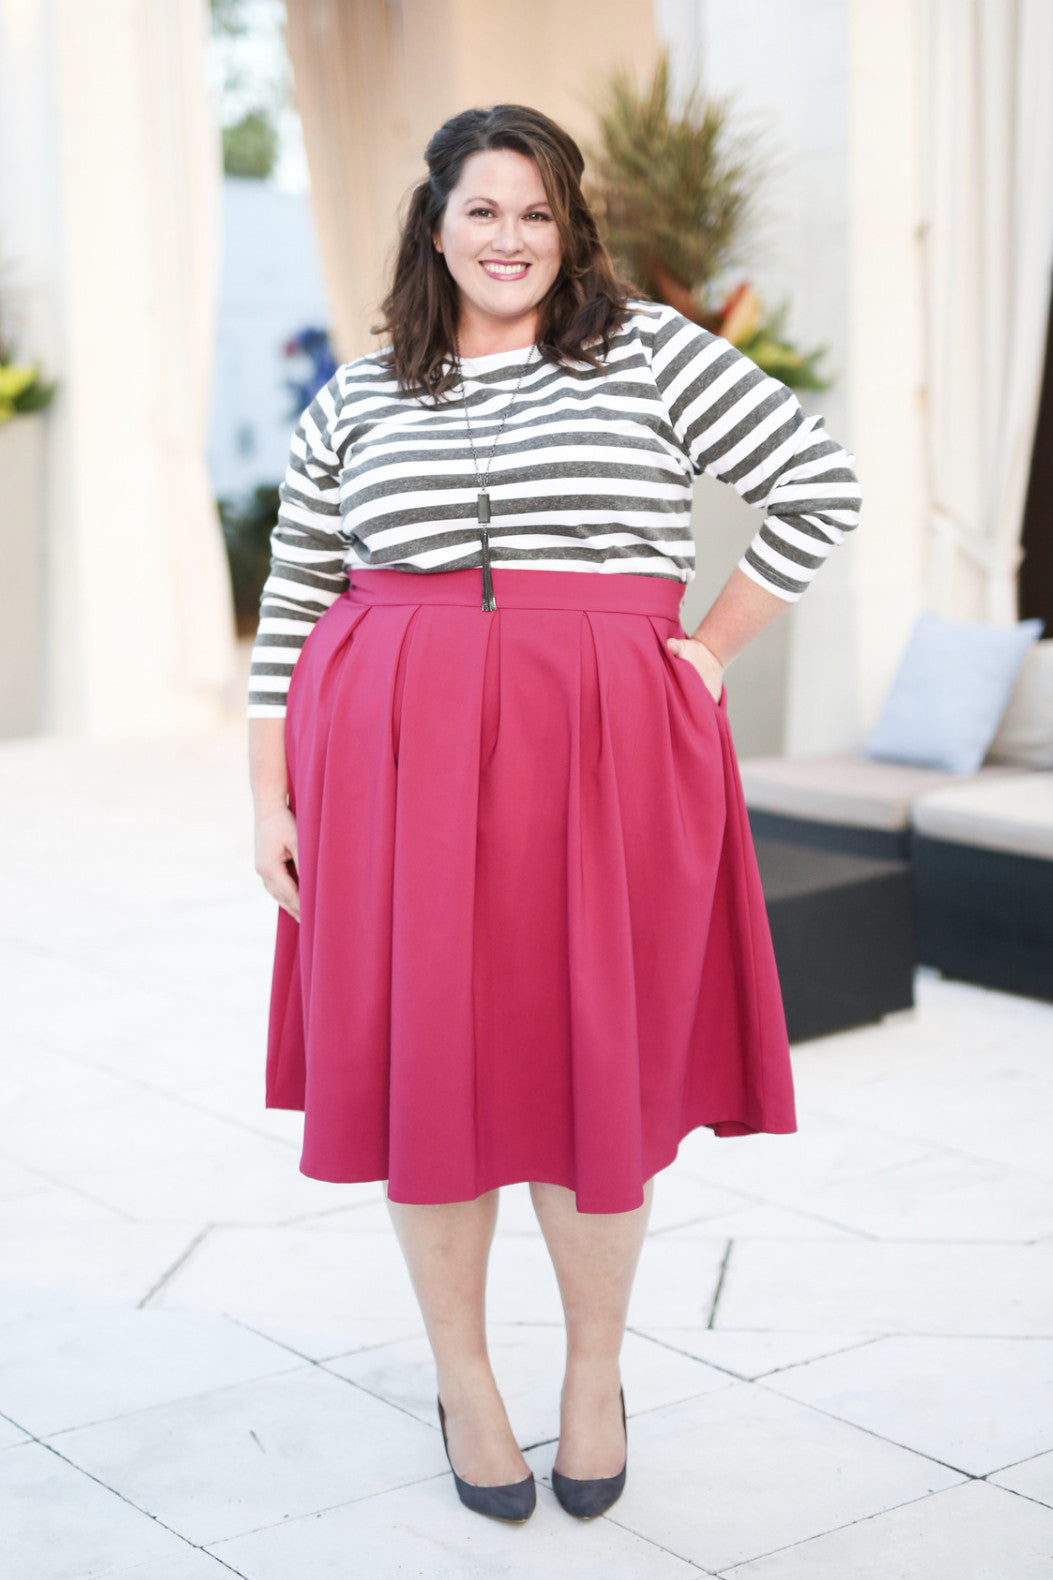 Plus Size Clothing for Women - The Kate Midington - Berry - Society+ - Society Plus - Buy Online Now! - 1